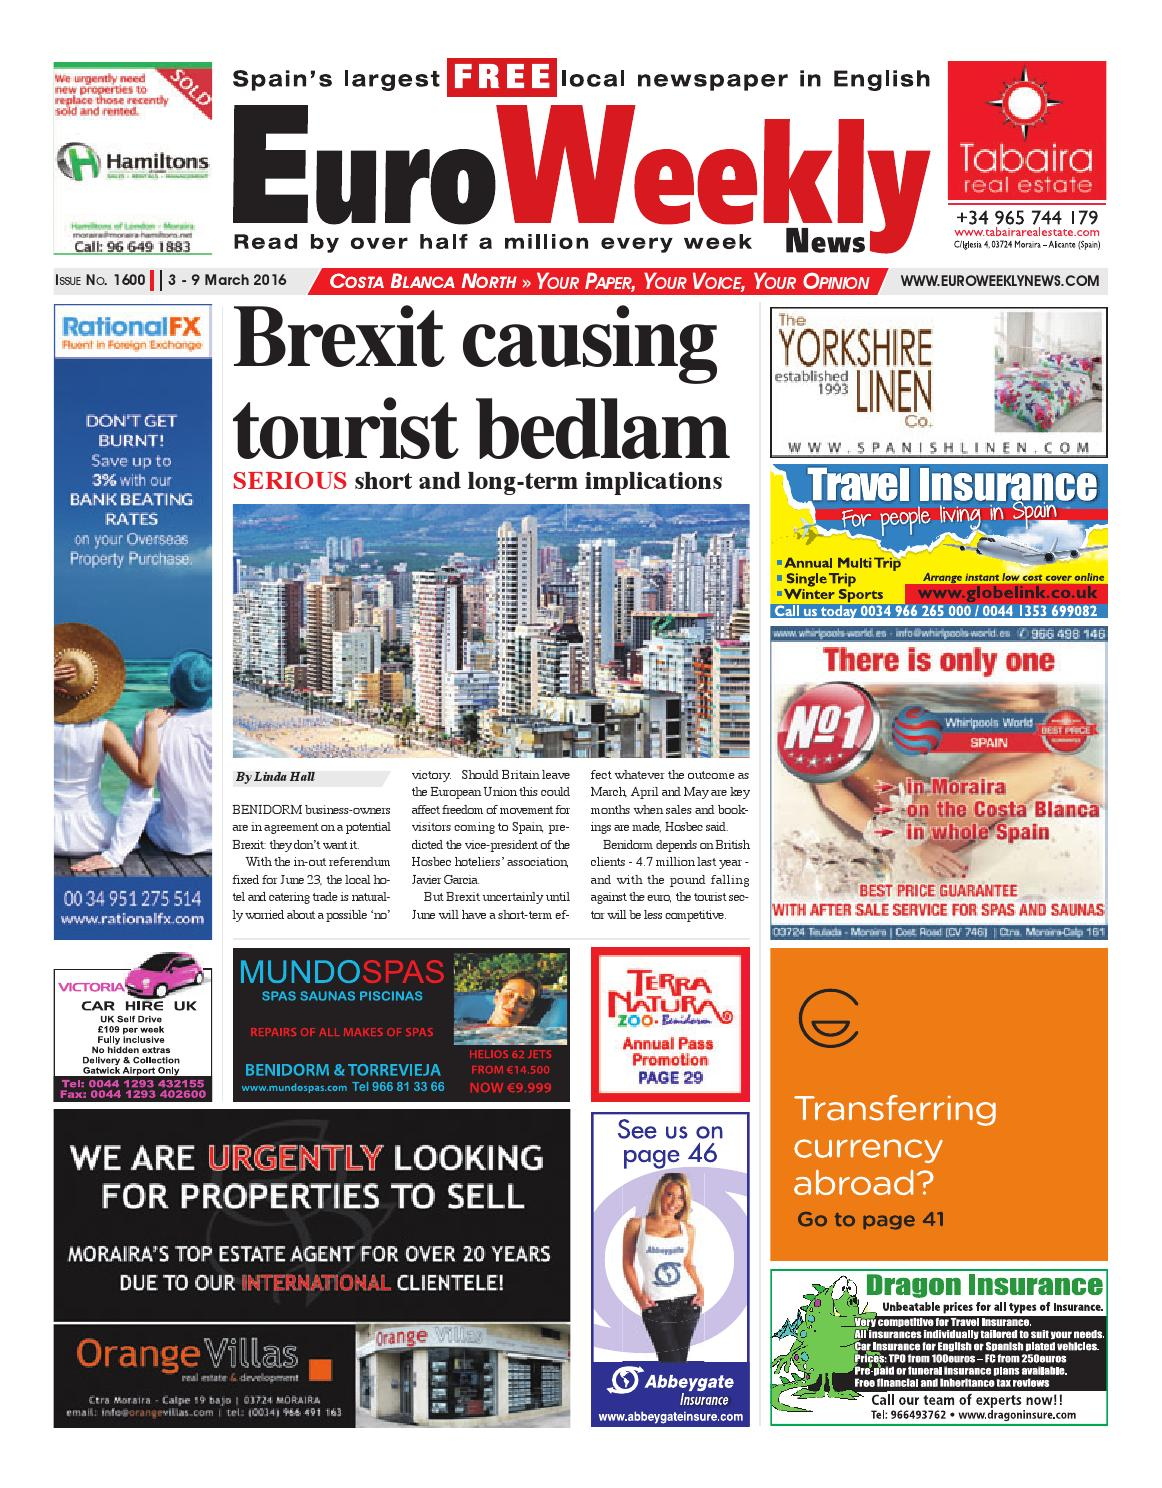 Euro Weekly News Costa Blanca North 3 9 March 2016 Issue 1600  # Muebles Nemesis Bahia Blanca